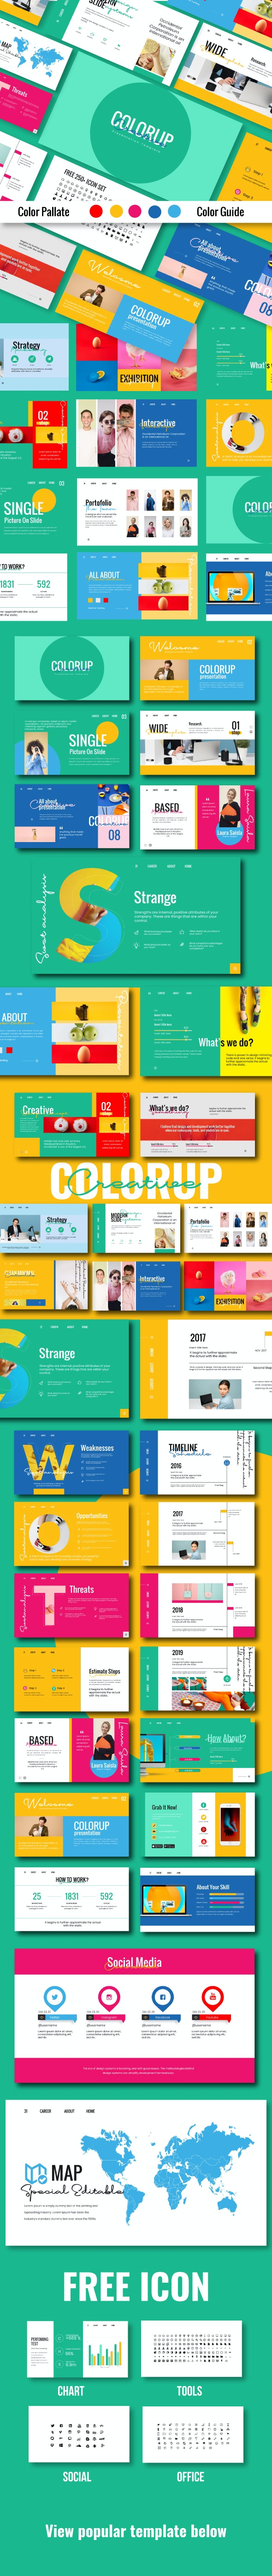 Colorup Powerpoint Template - Creative PowerPoint Templates